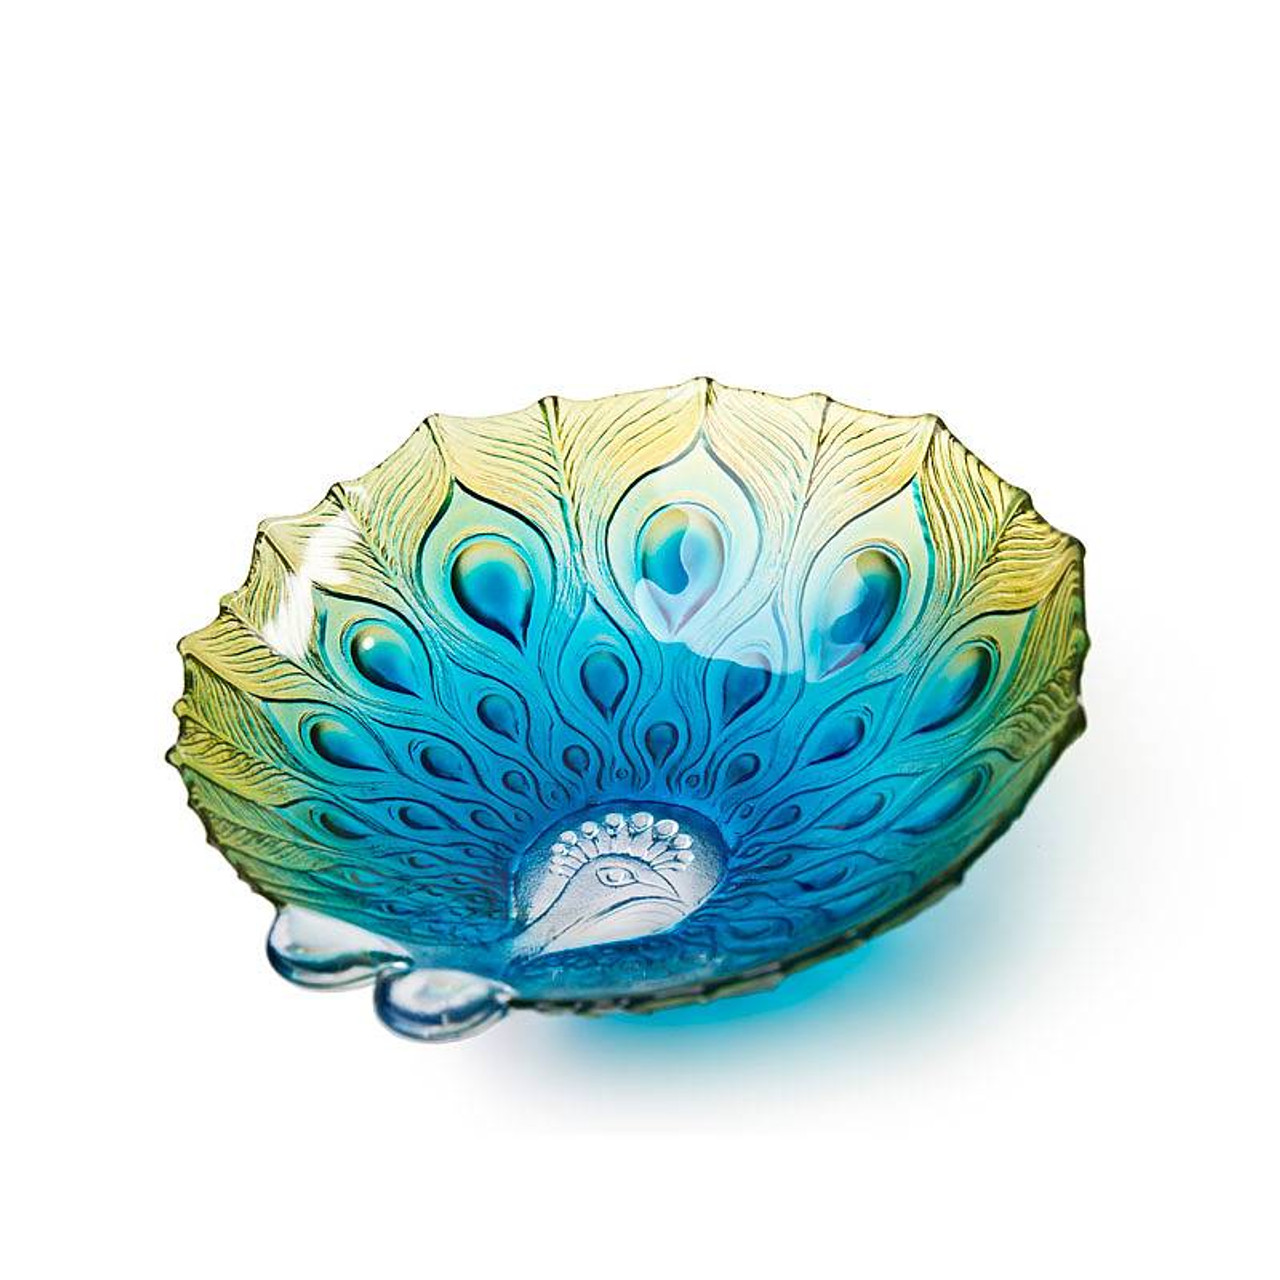 Peacock Bowl Large By Mats Jonasson Iapetus Gallery